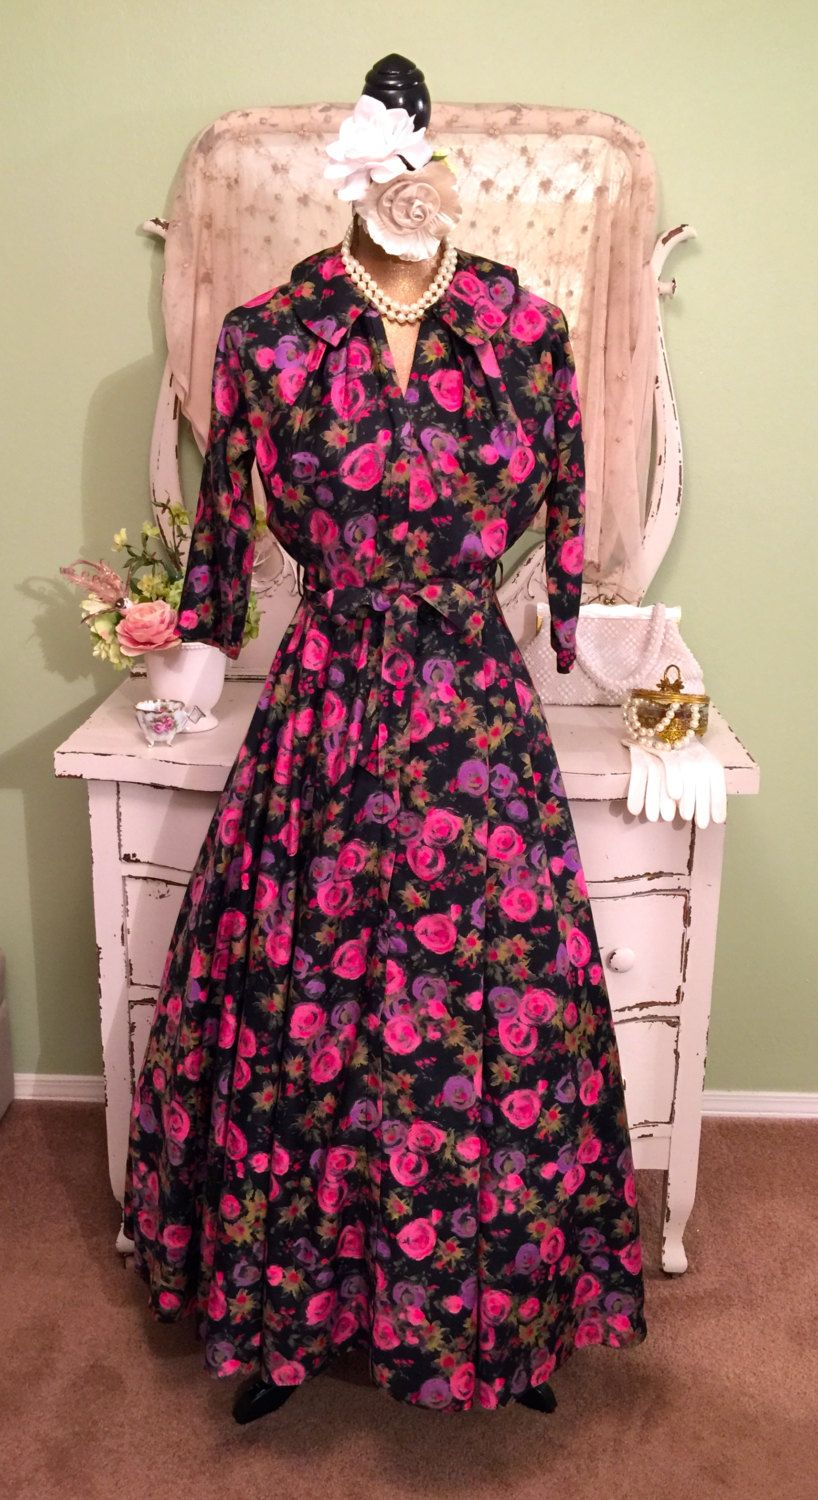 4002b8146aab1 Vintage 50s Long Floral Dress